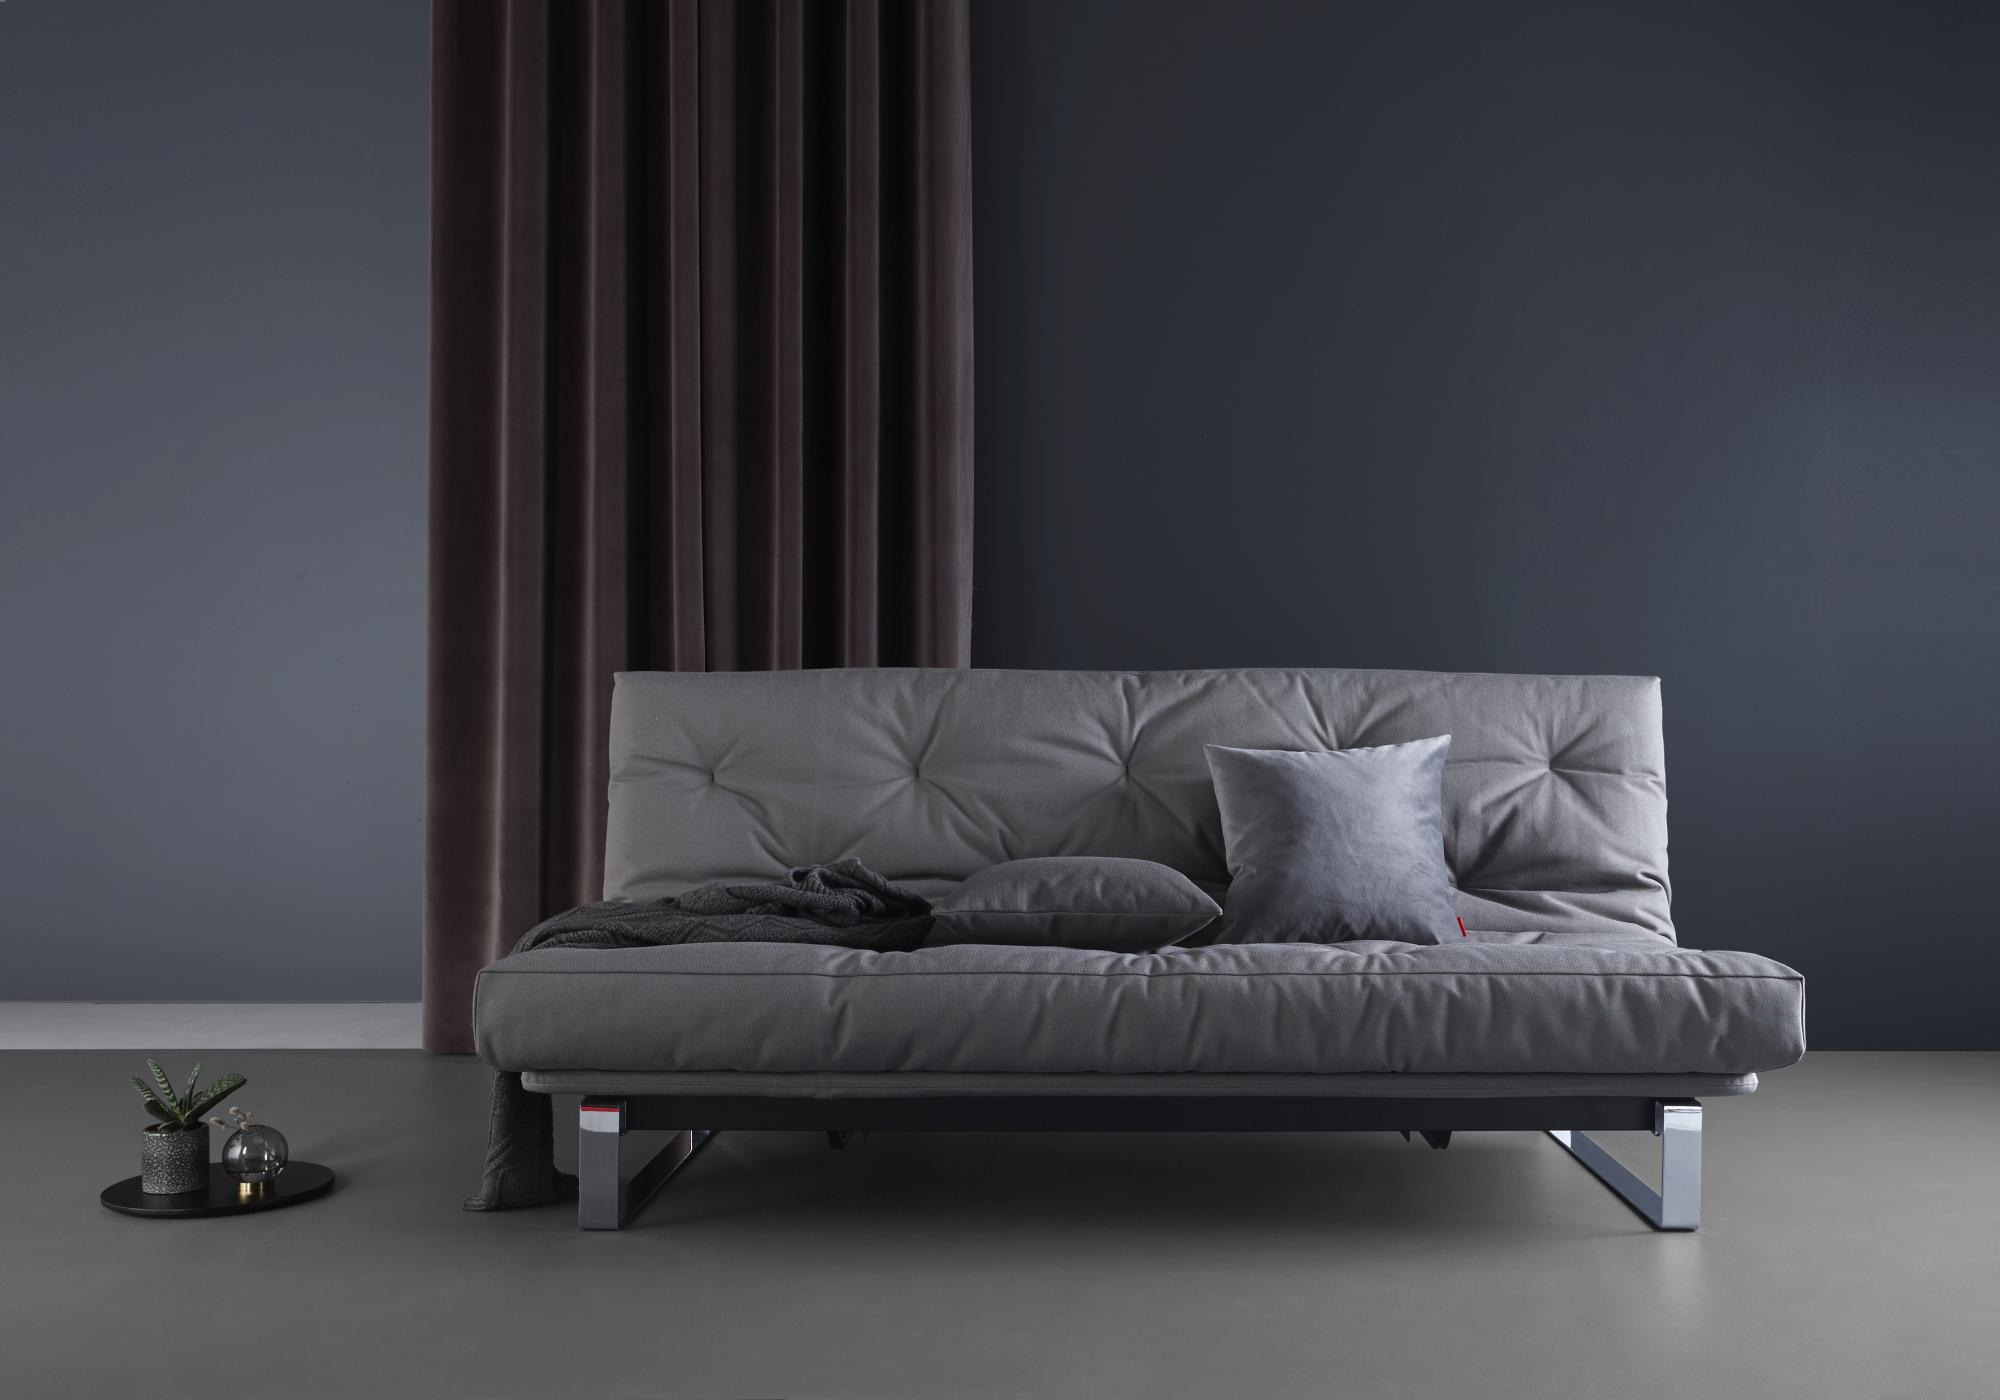 Sofa Online Konfigurieren Sofabett Sofabett Minimum 140 - Innovation Sofas